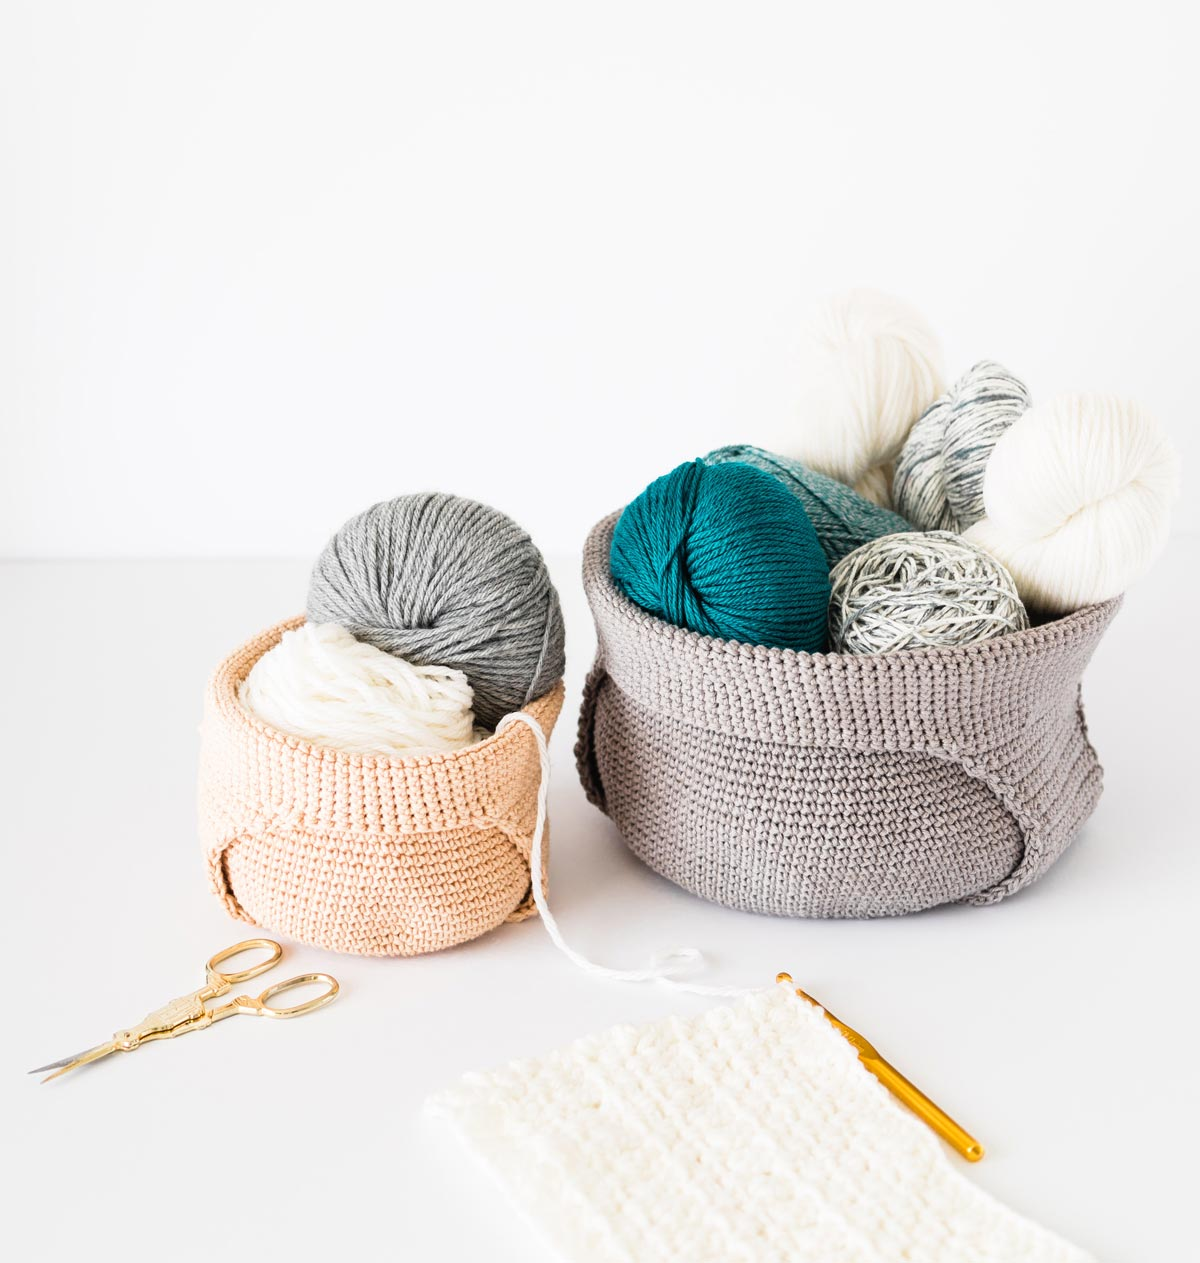 two crochet project bags with handles folded over to form yarn baskets fill of yarn